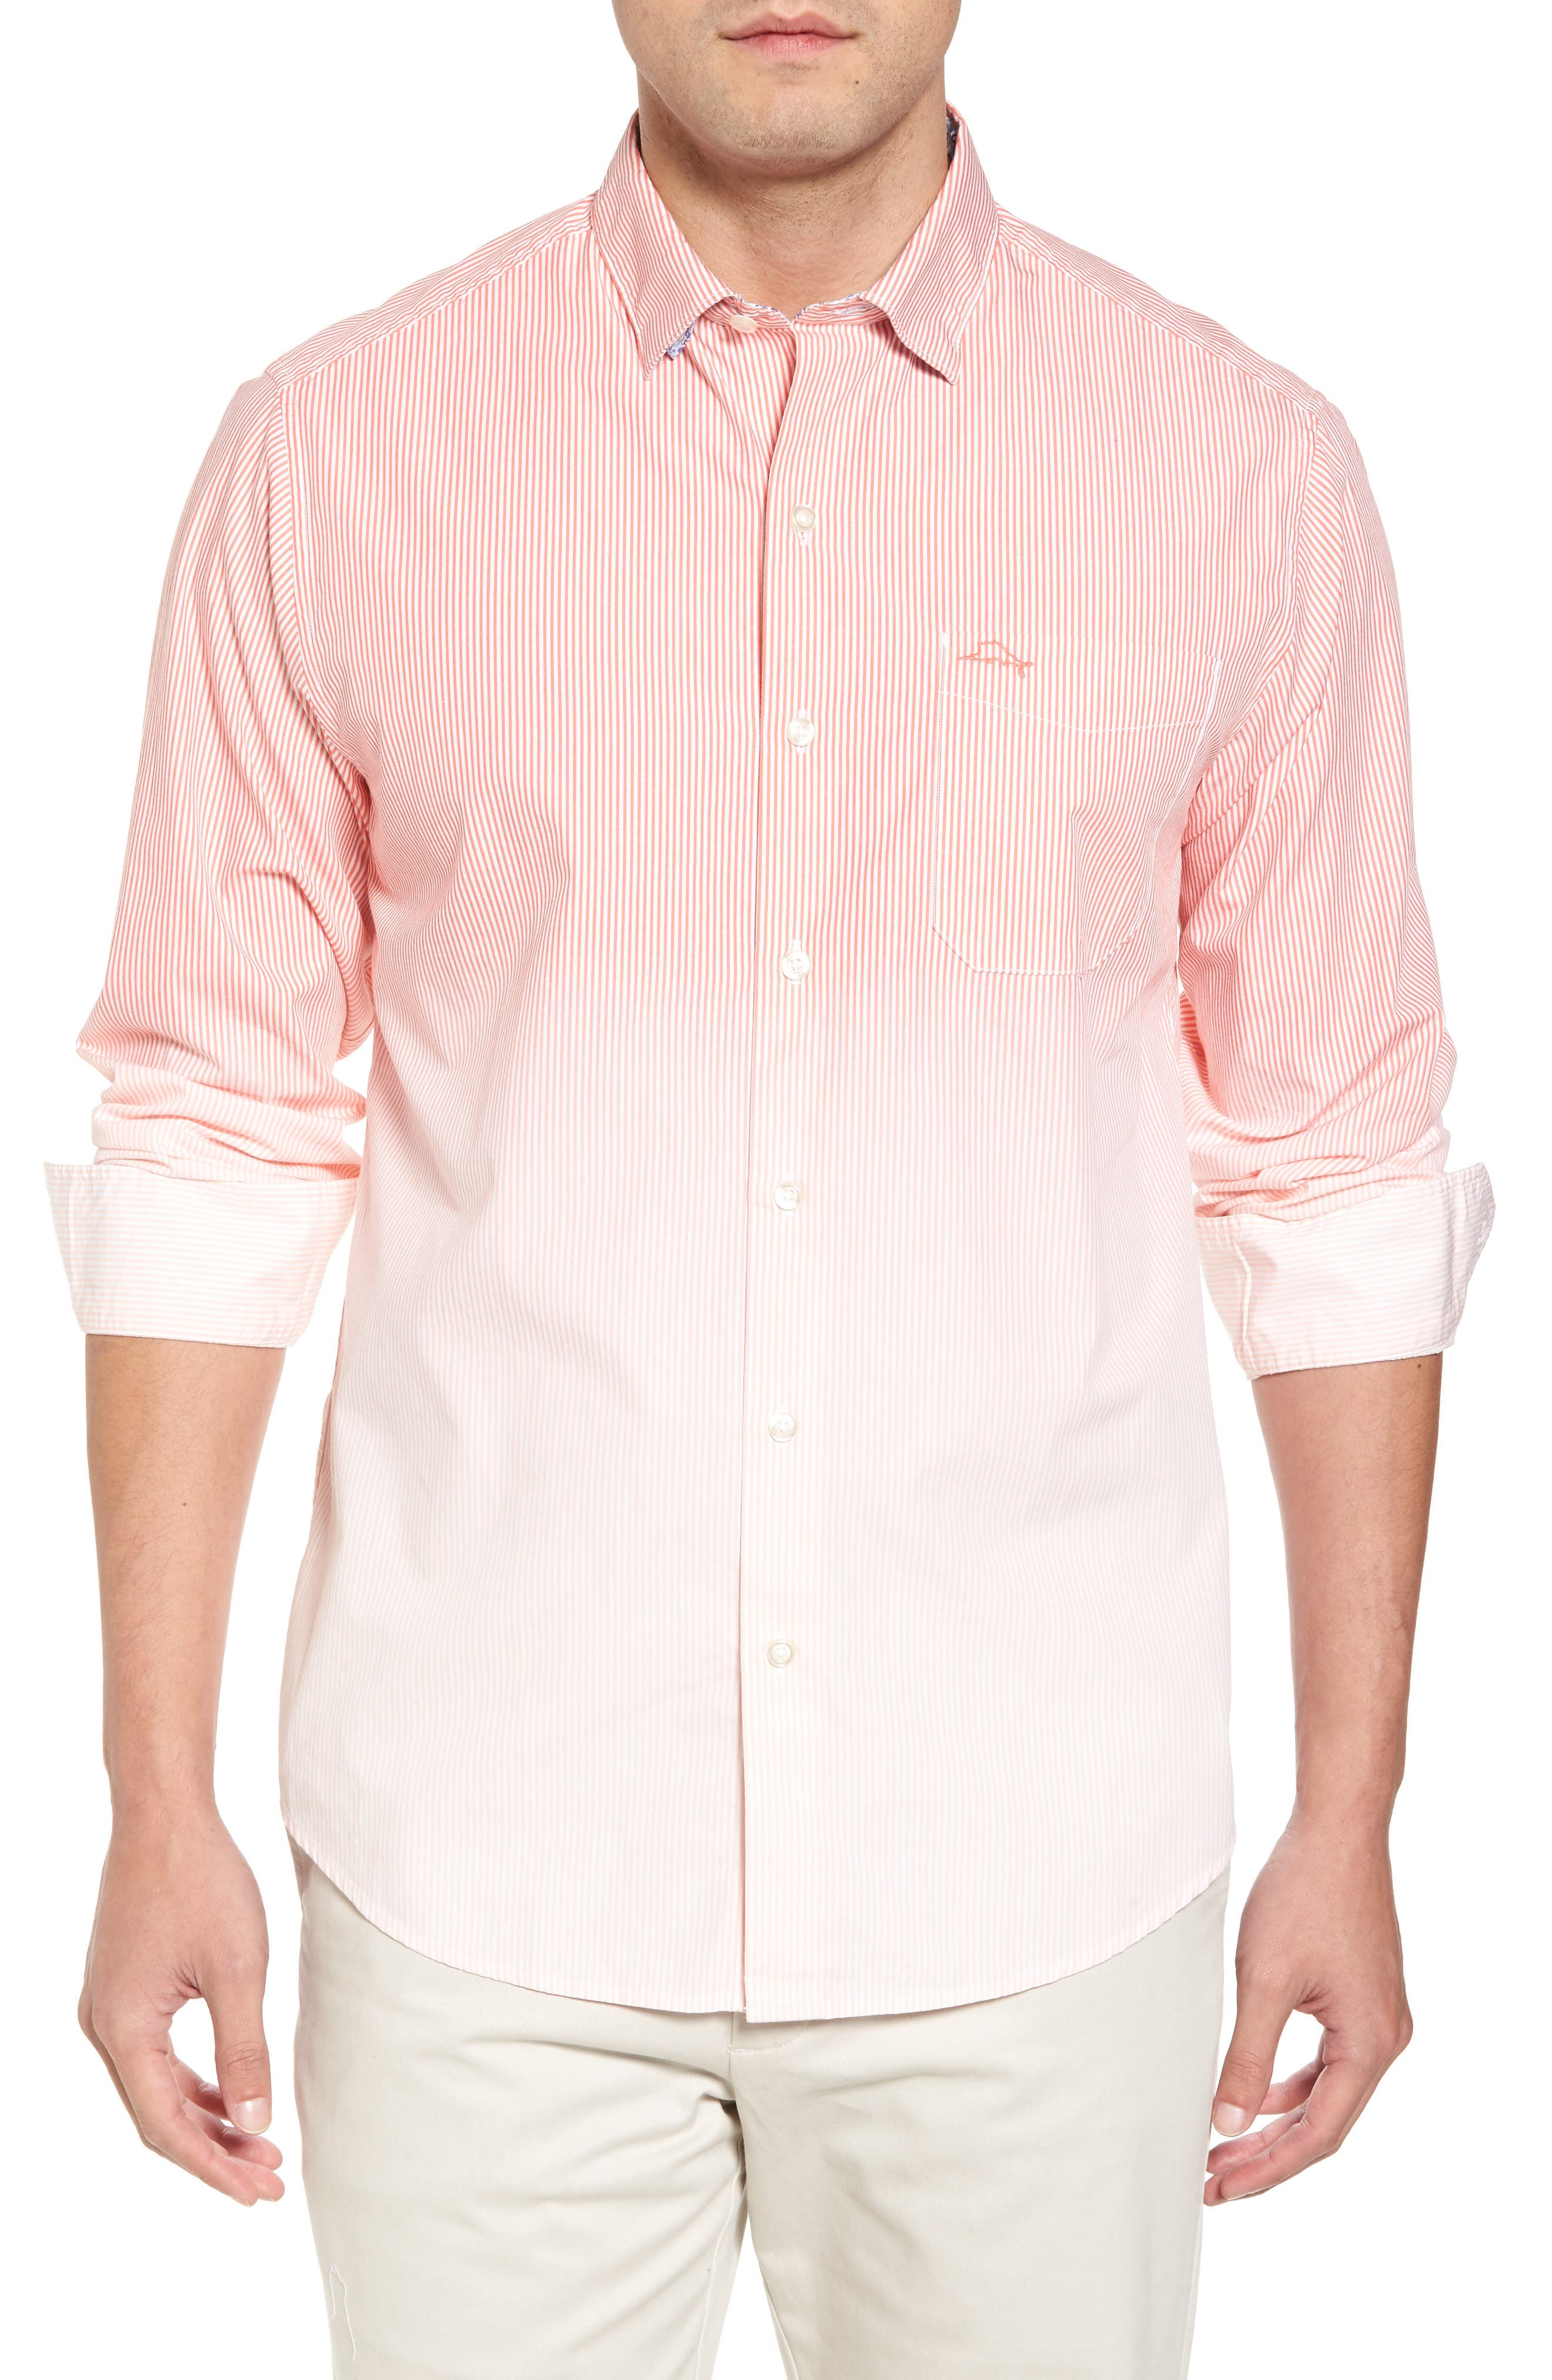 Fadeaway Beach Sport Shirt,                         Main,                         color, 950